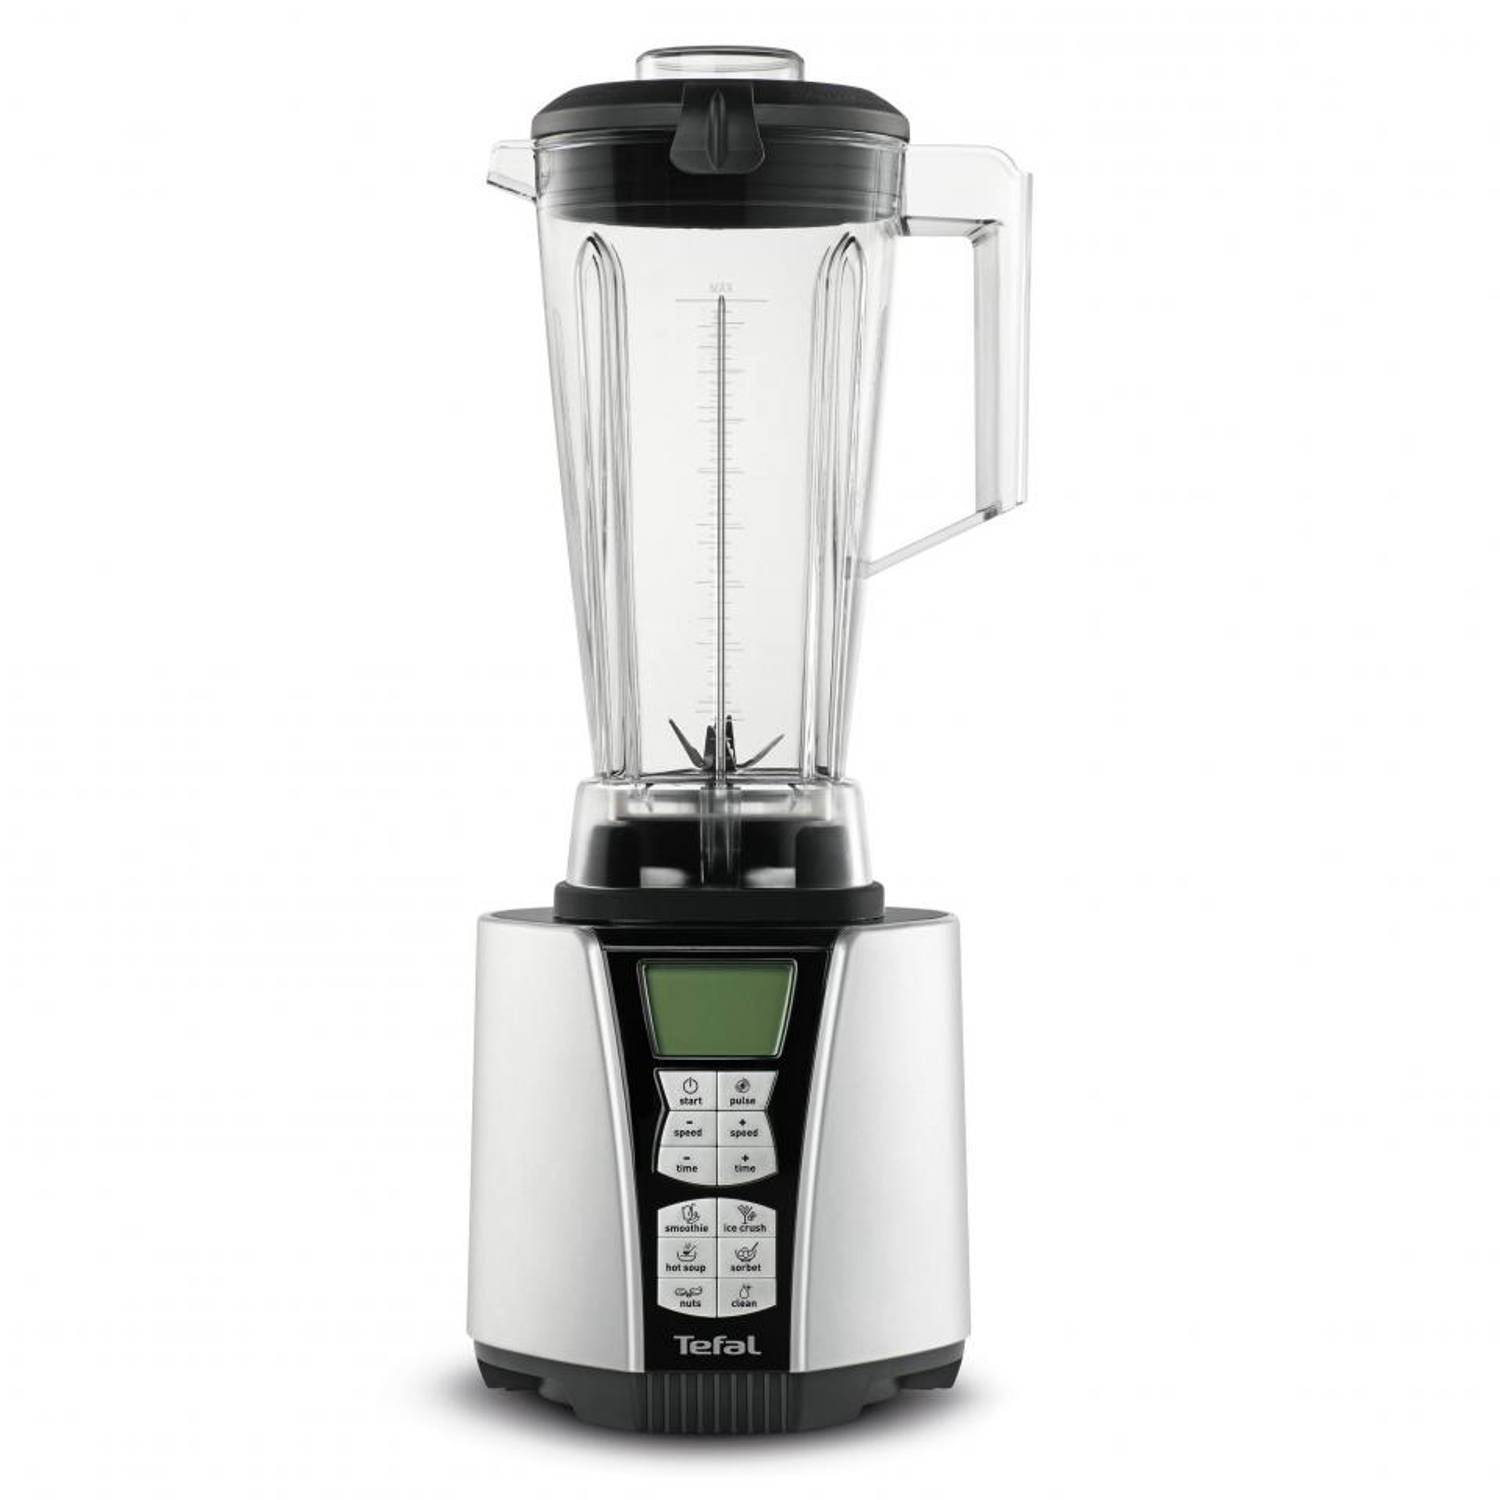 Tefal High Speed blender Ultrablend+ BL936E